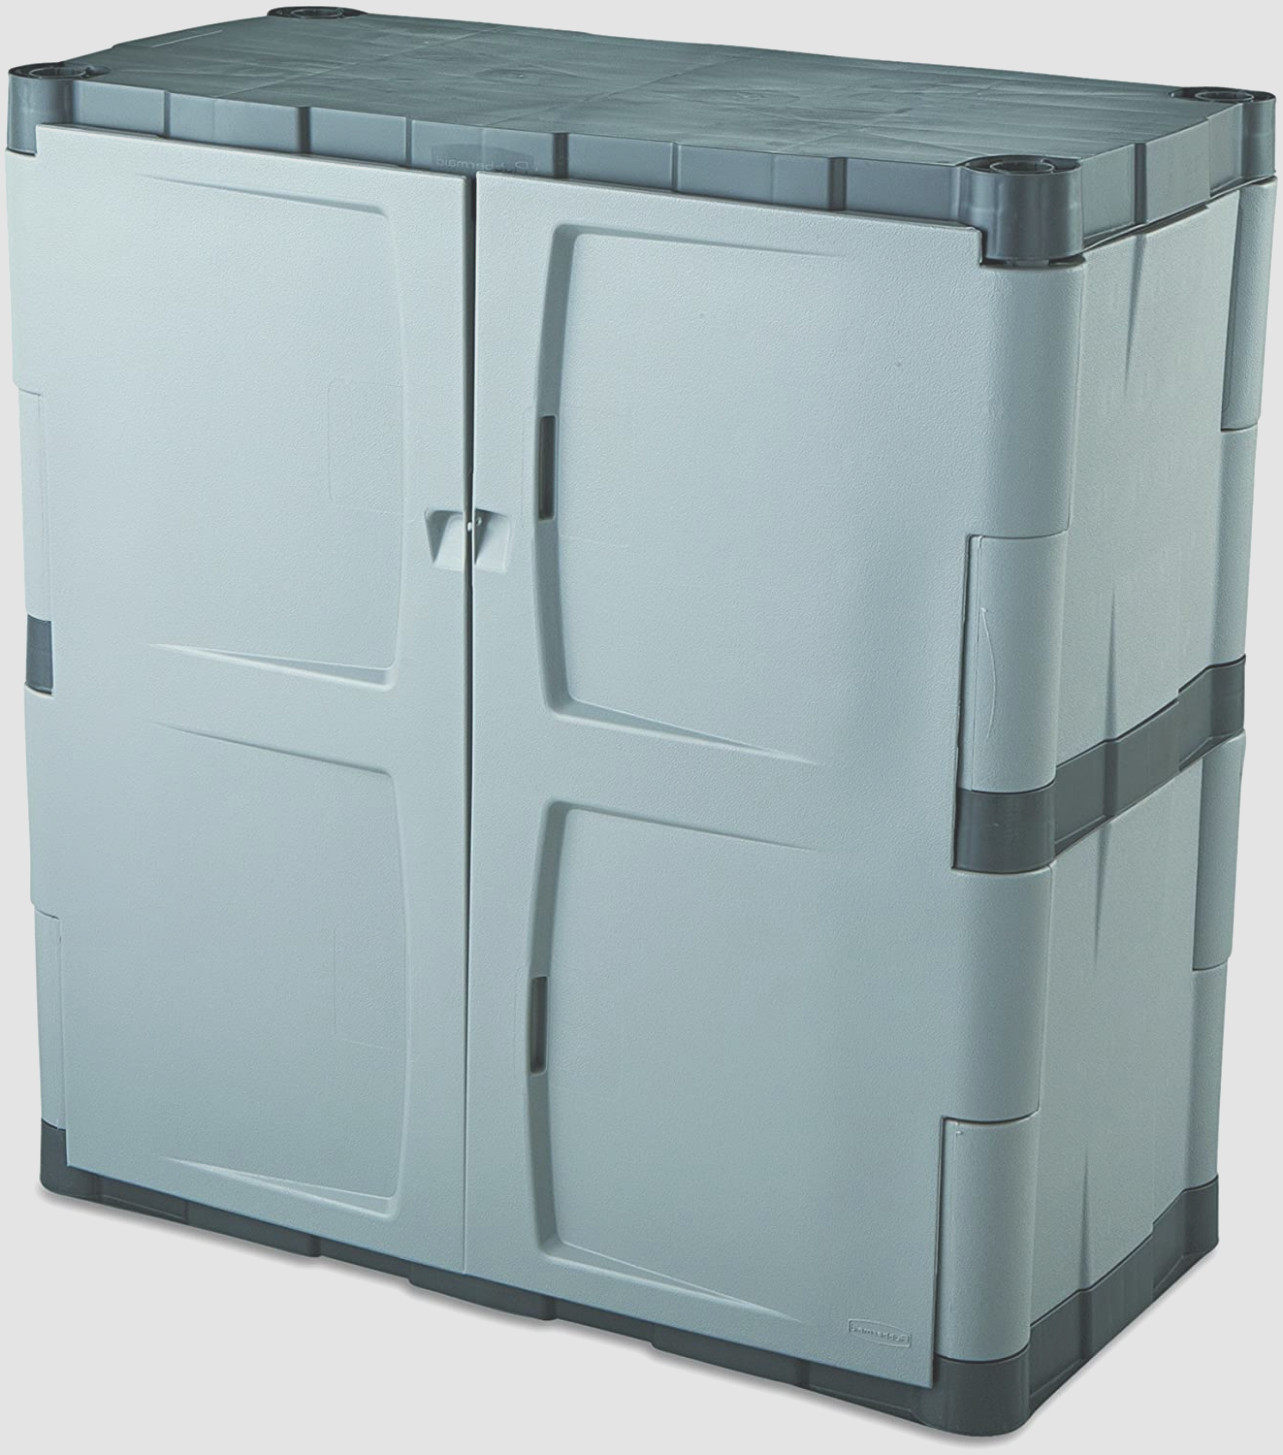 Rubbermaid Plastic Storage Cabinet